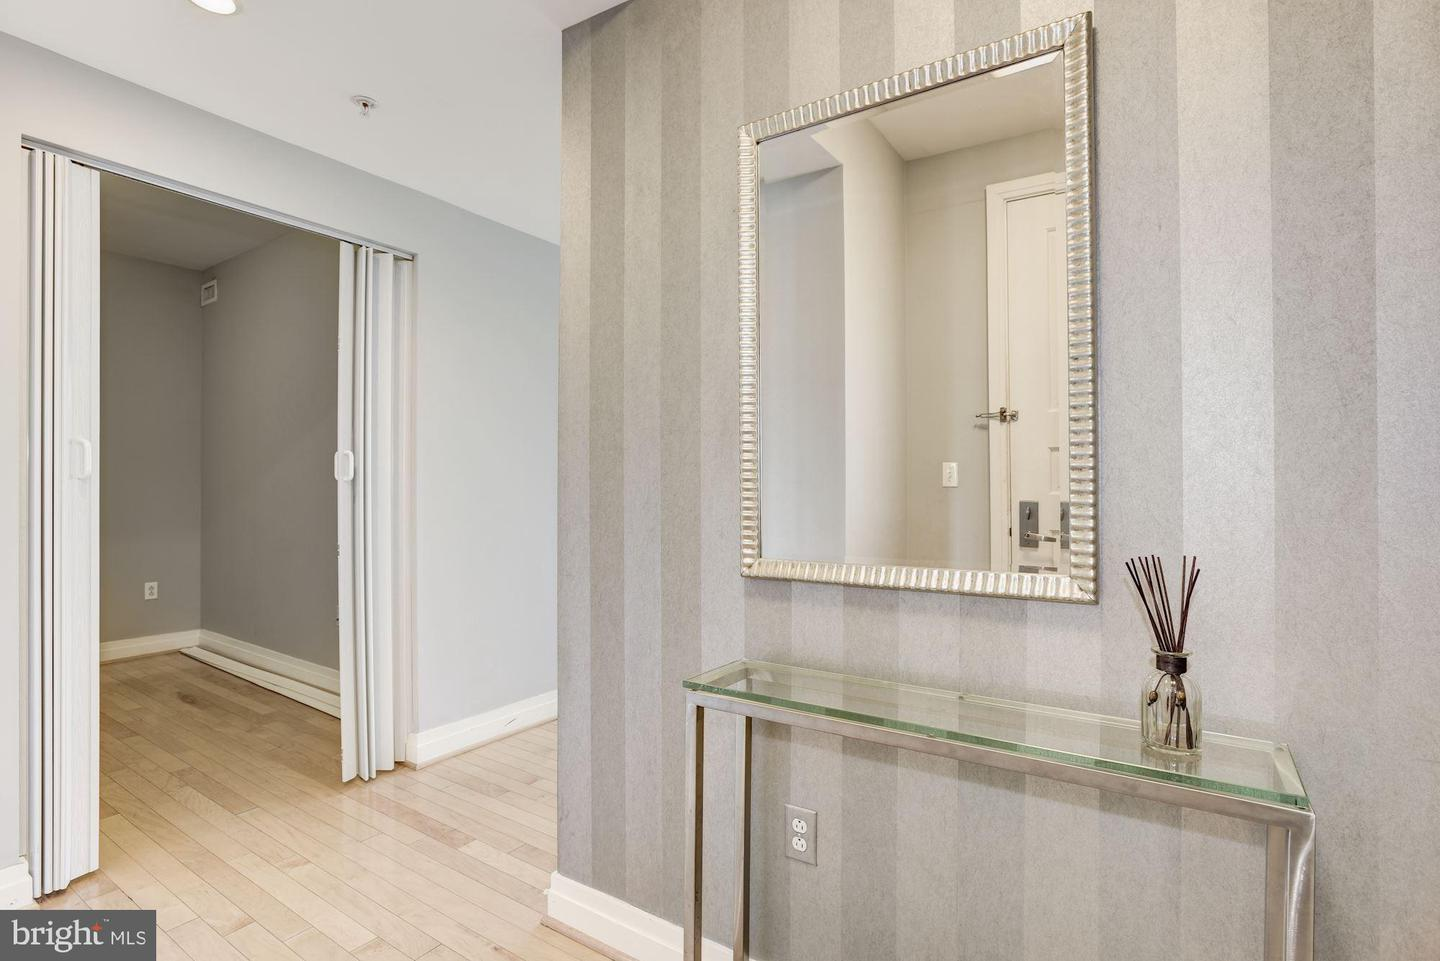 Additional photo for property listing at 8220 Crestwood Heights Dr #712 8220 Crestwood Heights Dr #712 Mclean, Virginia 22102 United States